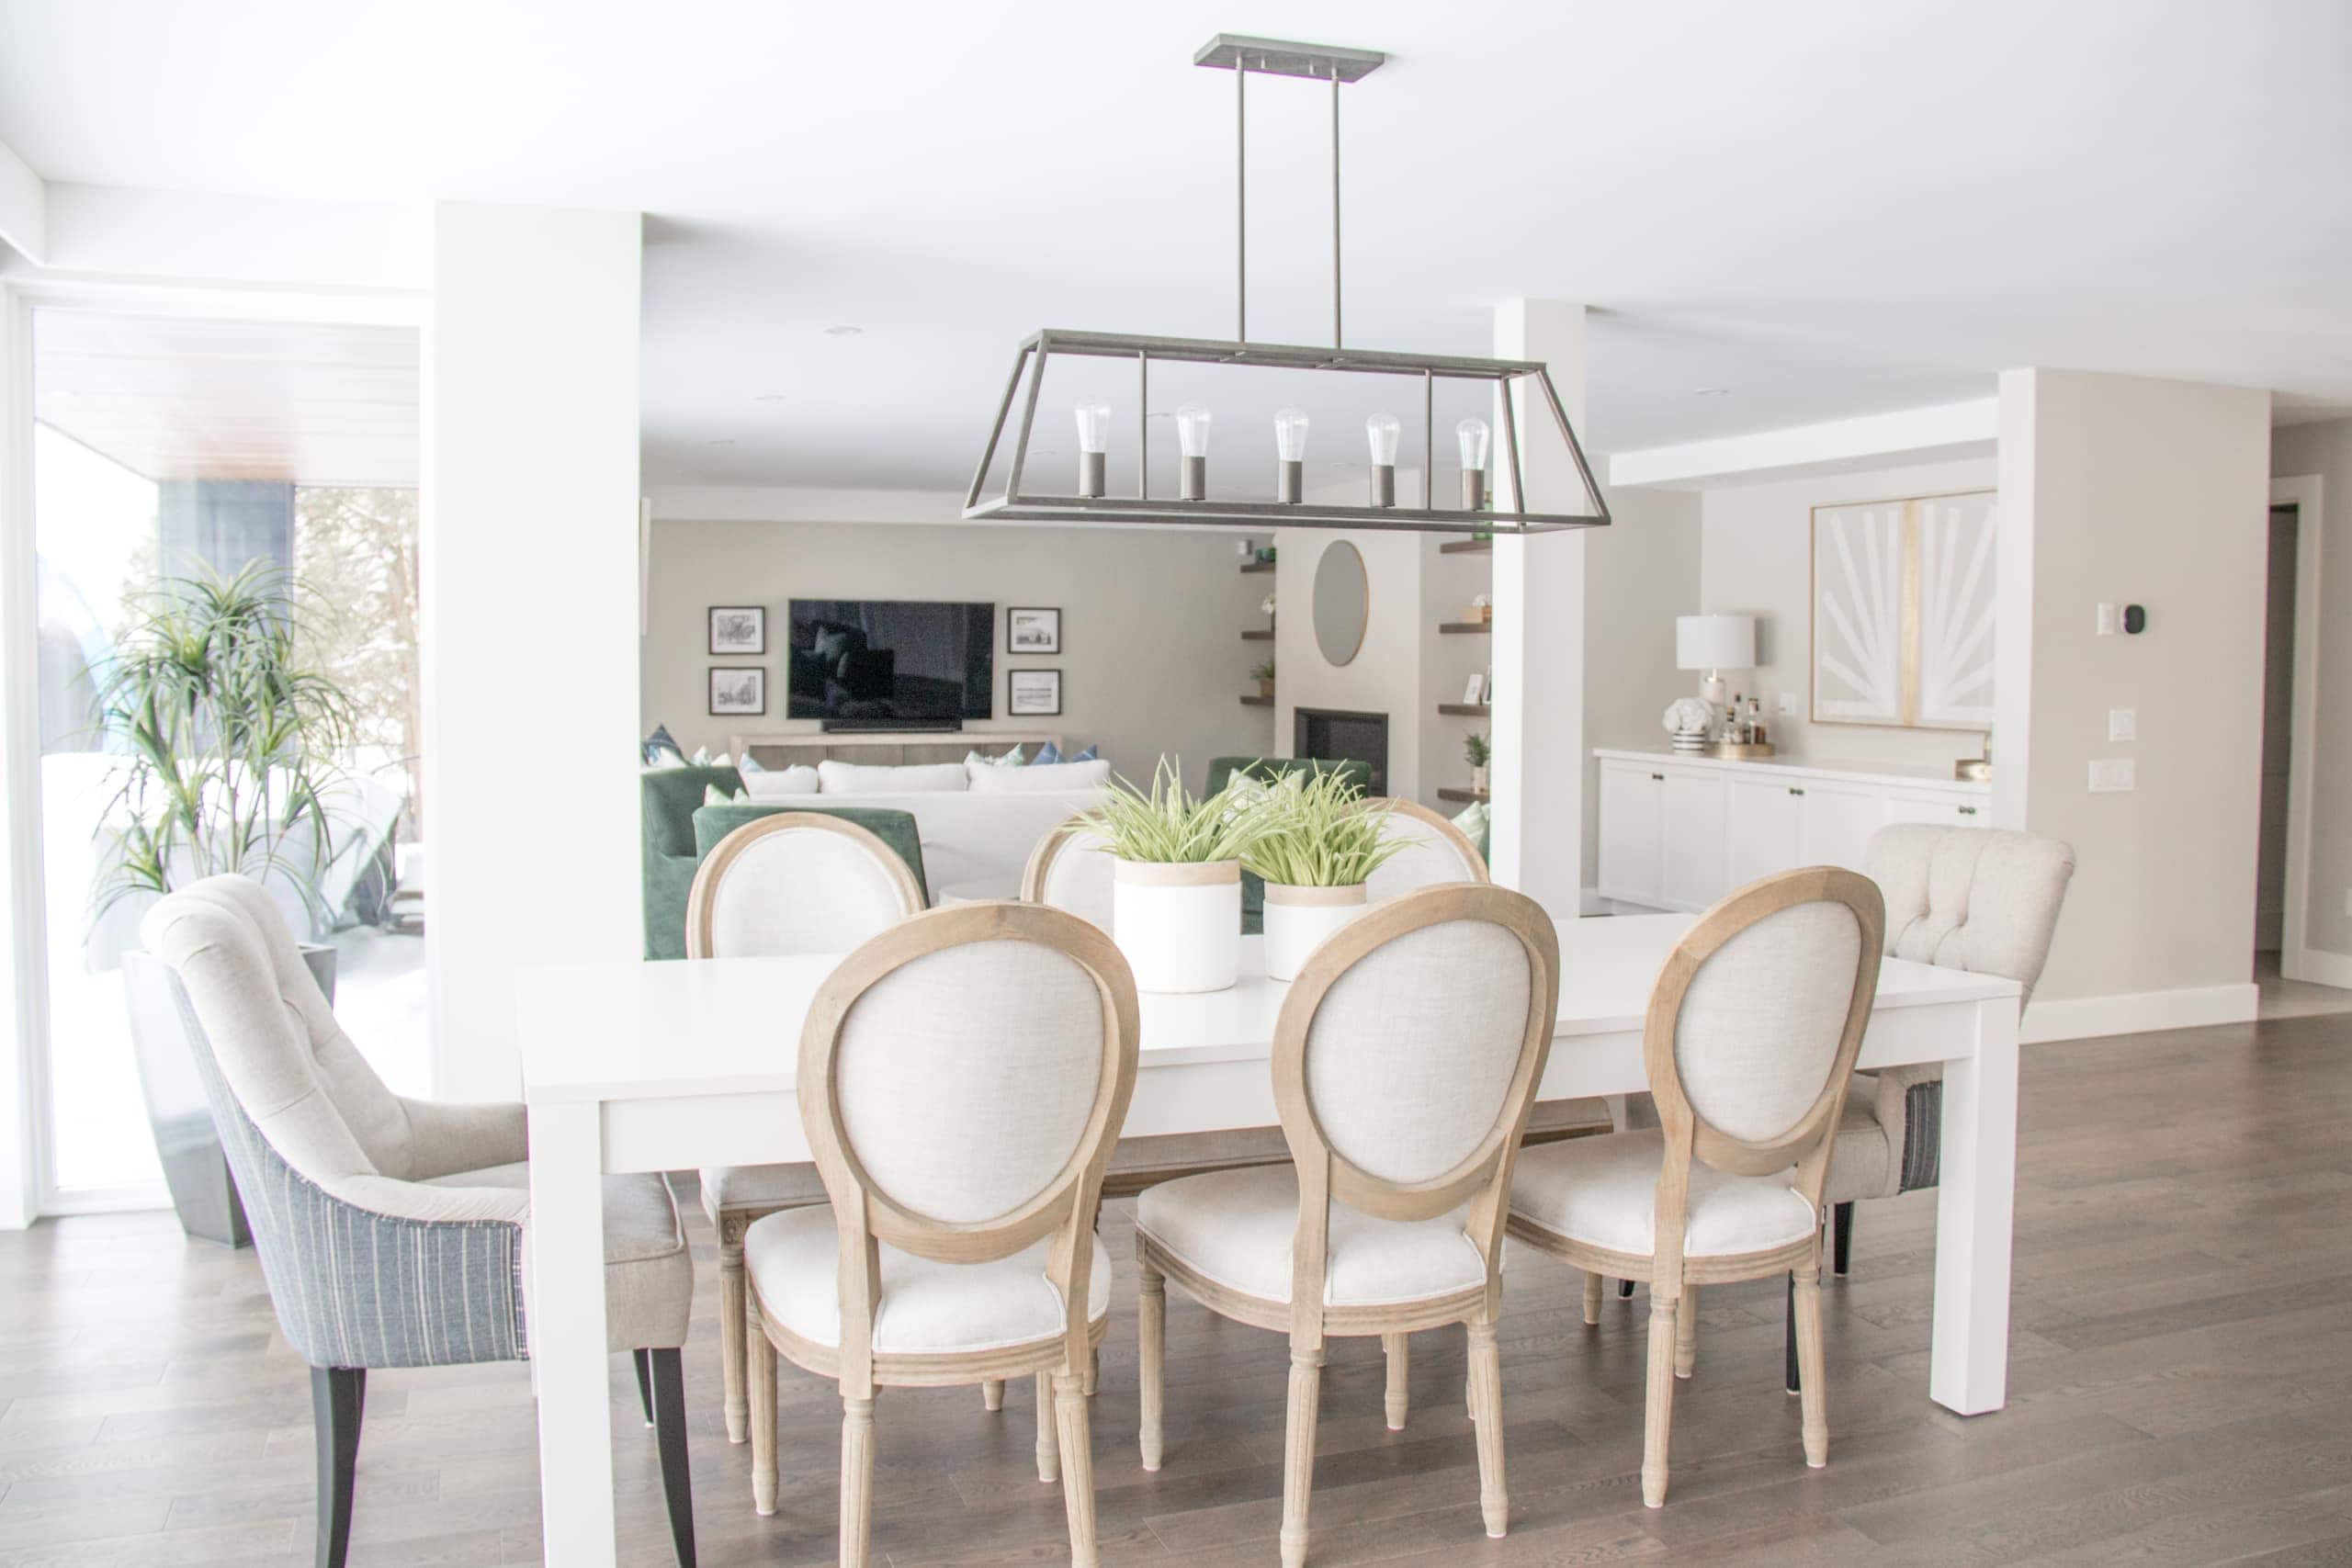 Bright, white dining room table with eight chair